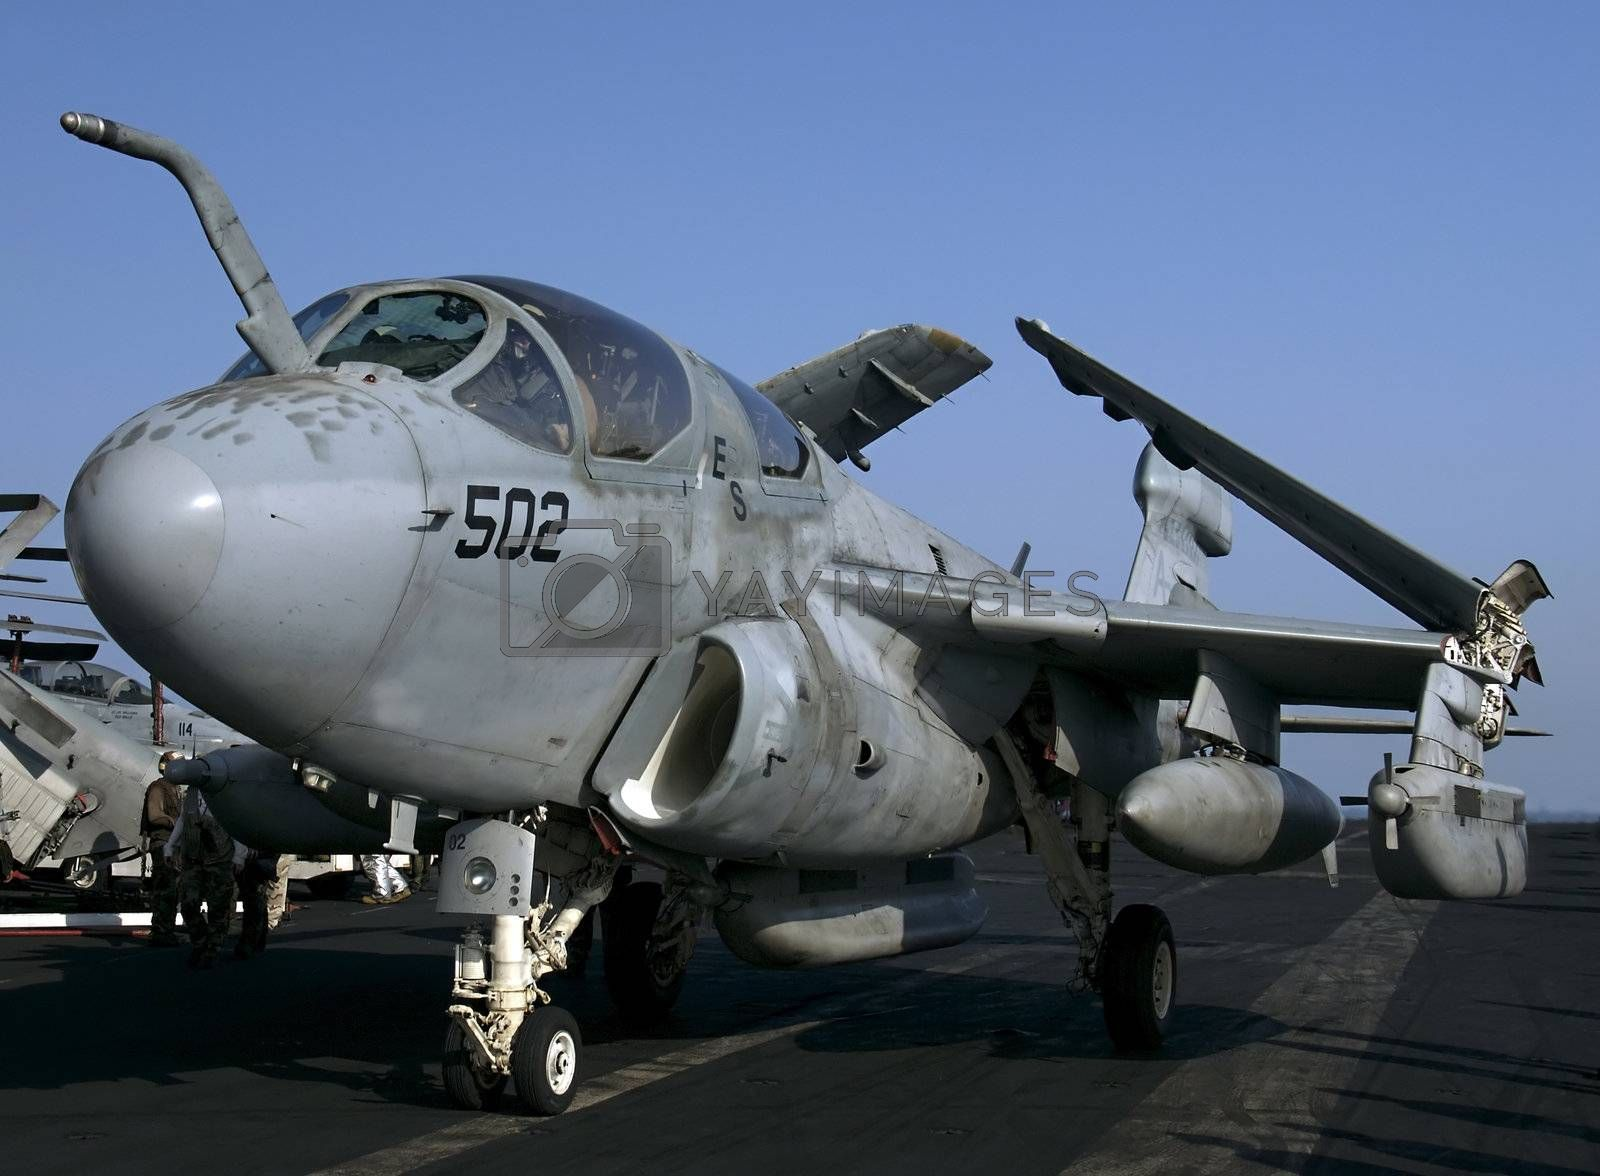 An EA-6B Prowler Electronic Attack aircraft taxies on an aircraft carrier